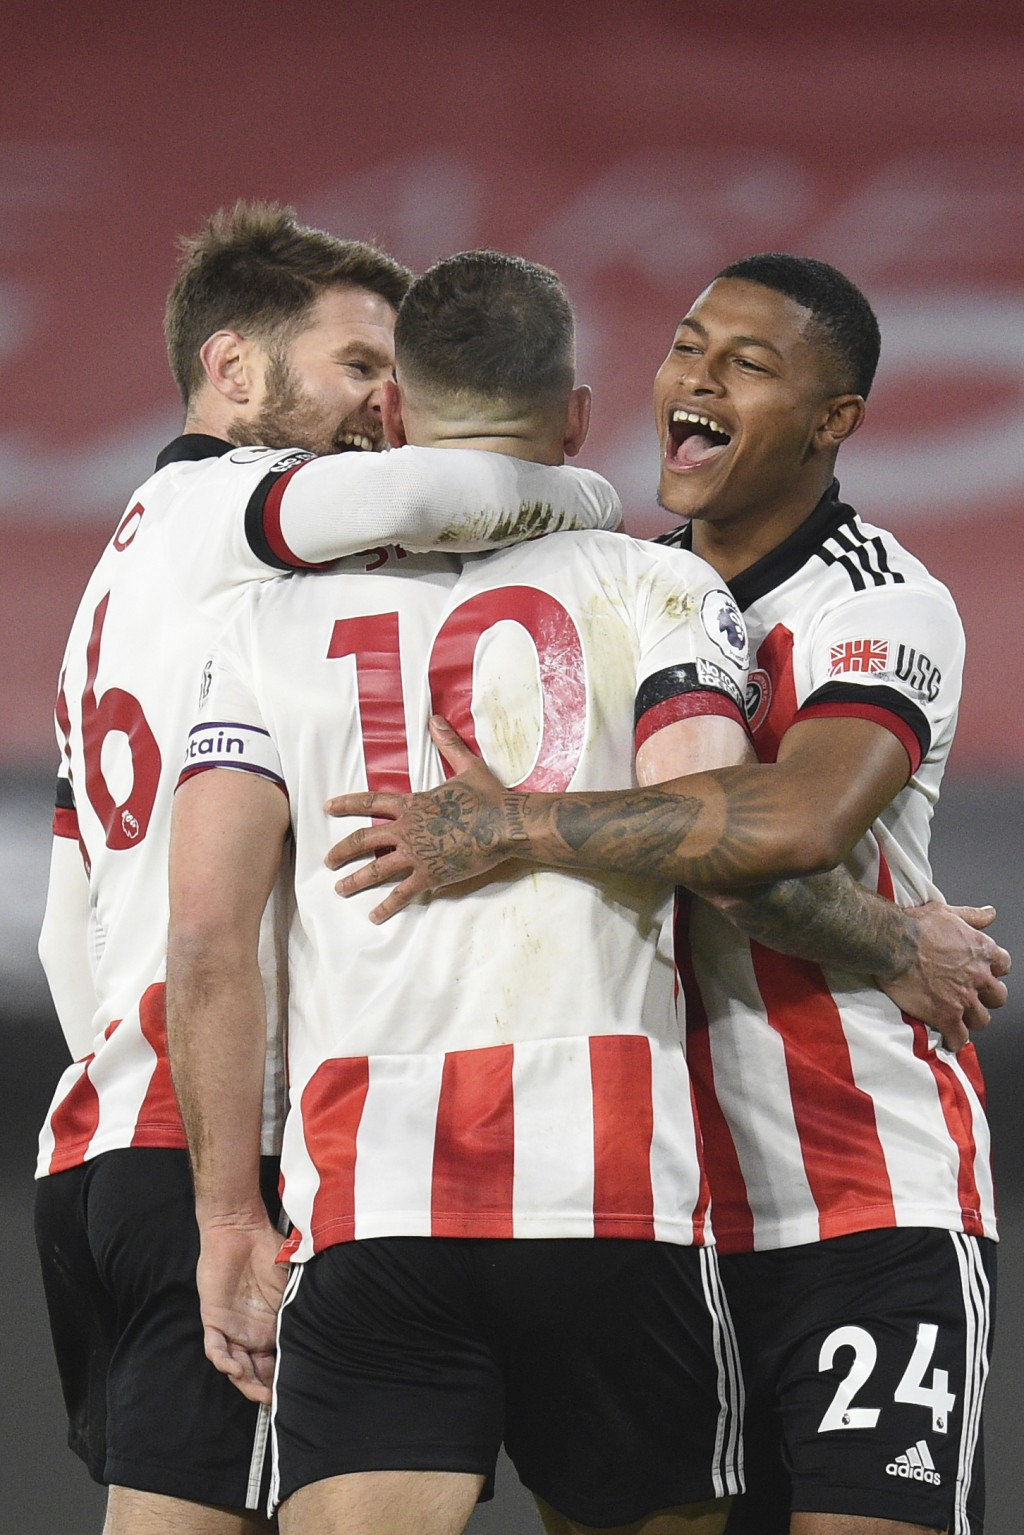 Sheffield United's Billy Sharp, center, celebrates after scoring his side's first goal during the English Premier League soccer match between Sheffiel...